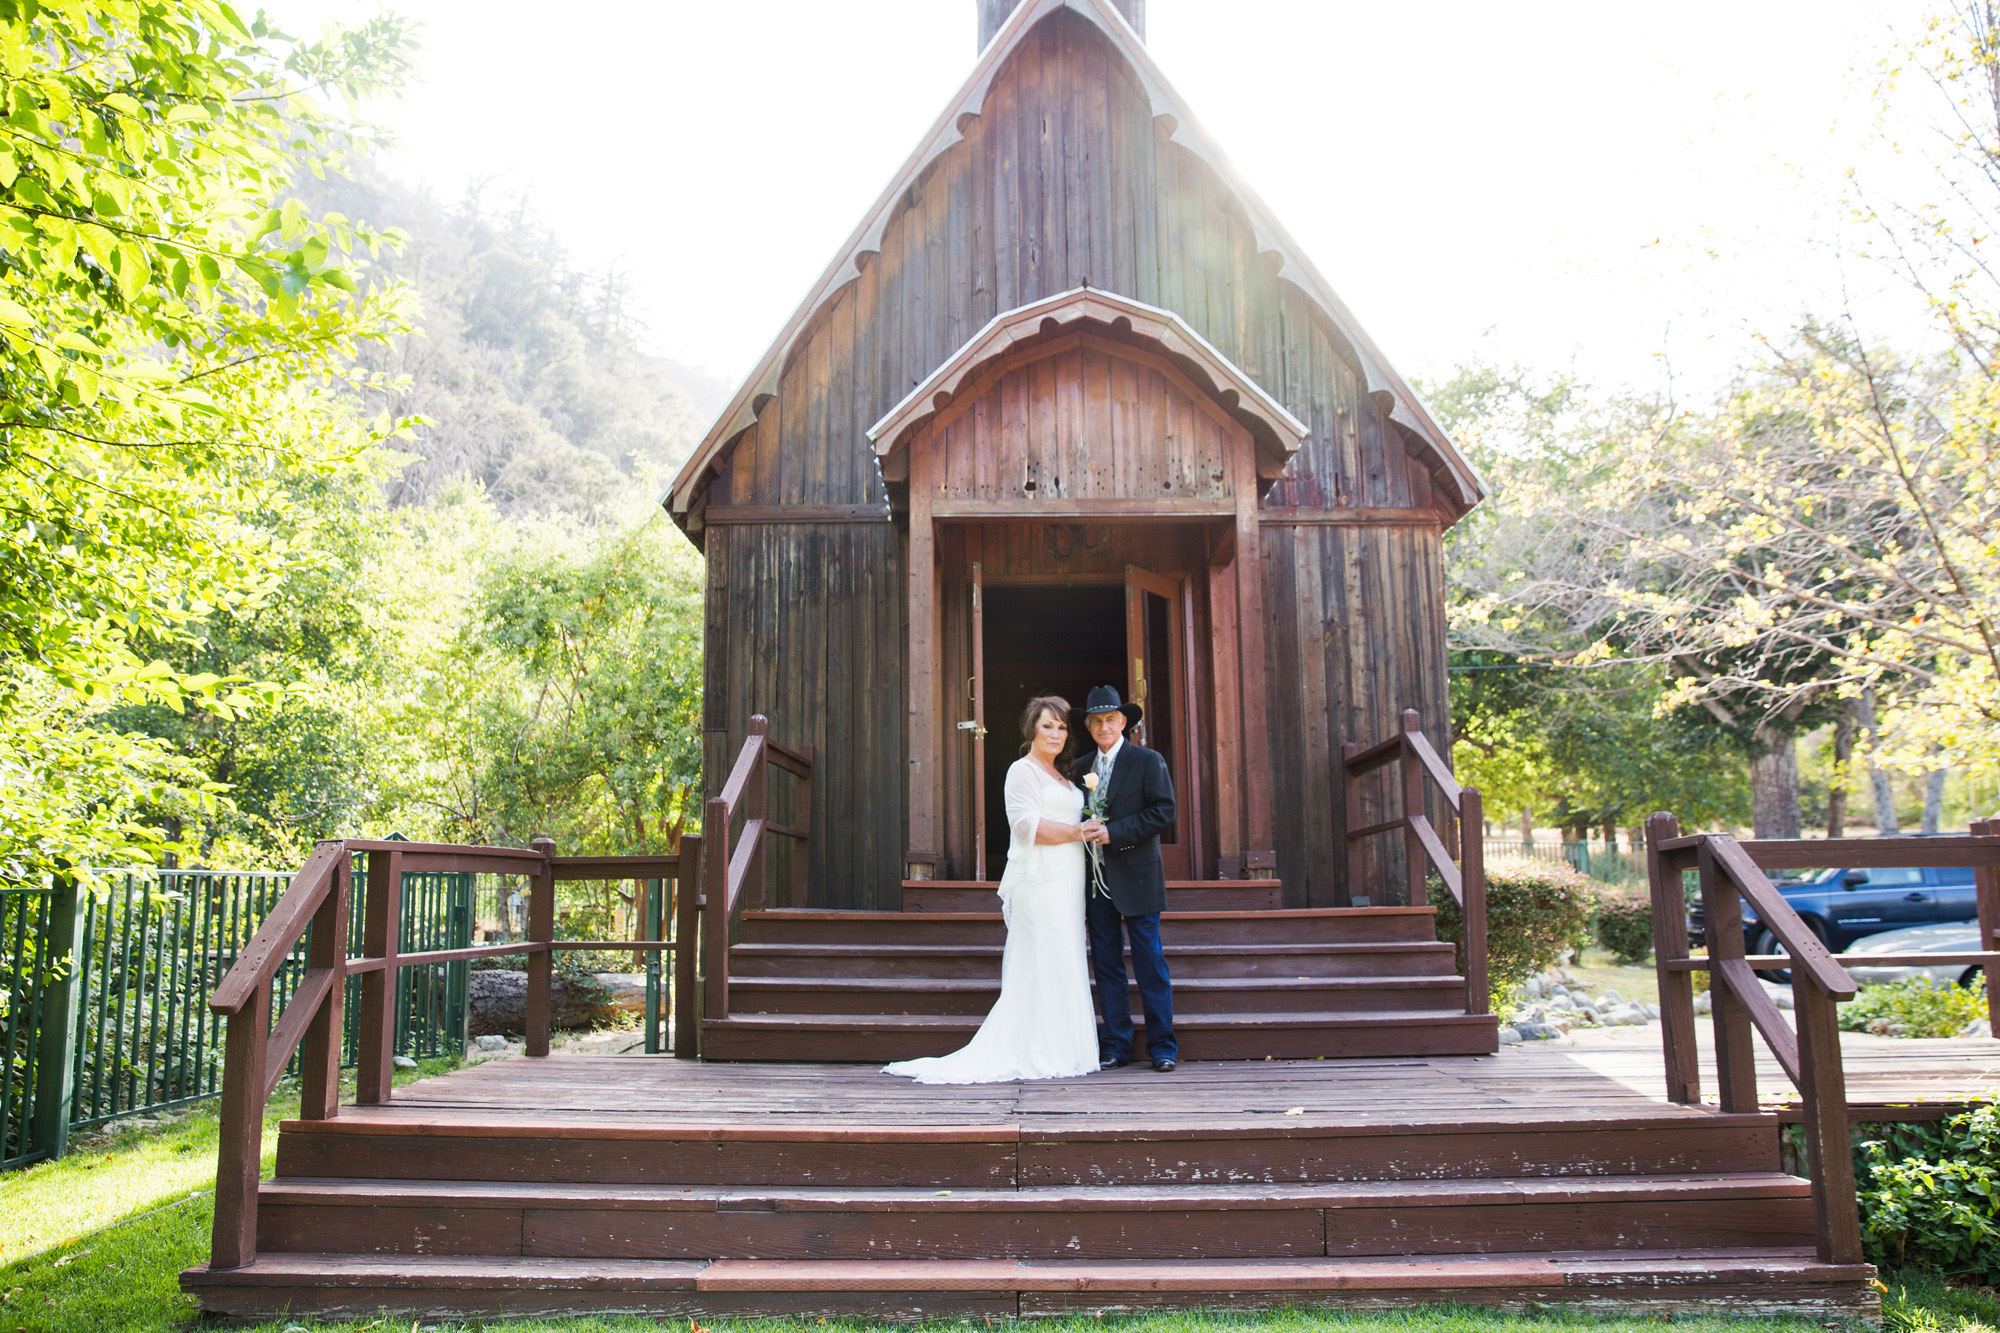 bride and groom in wooden chapel